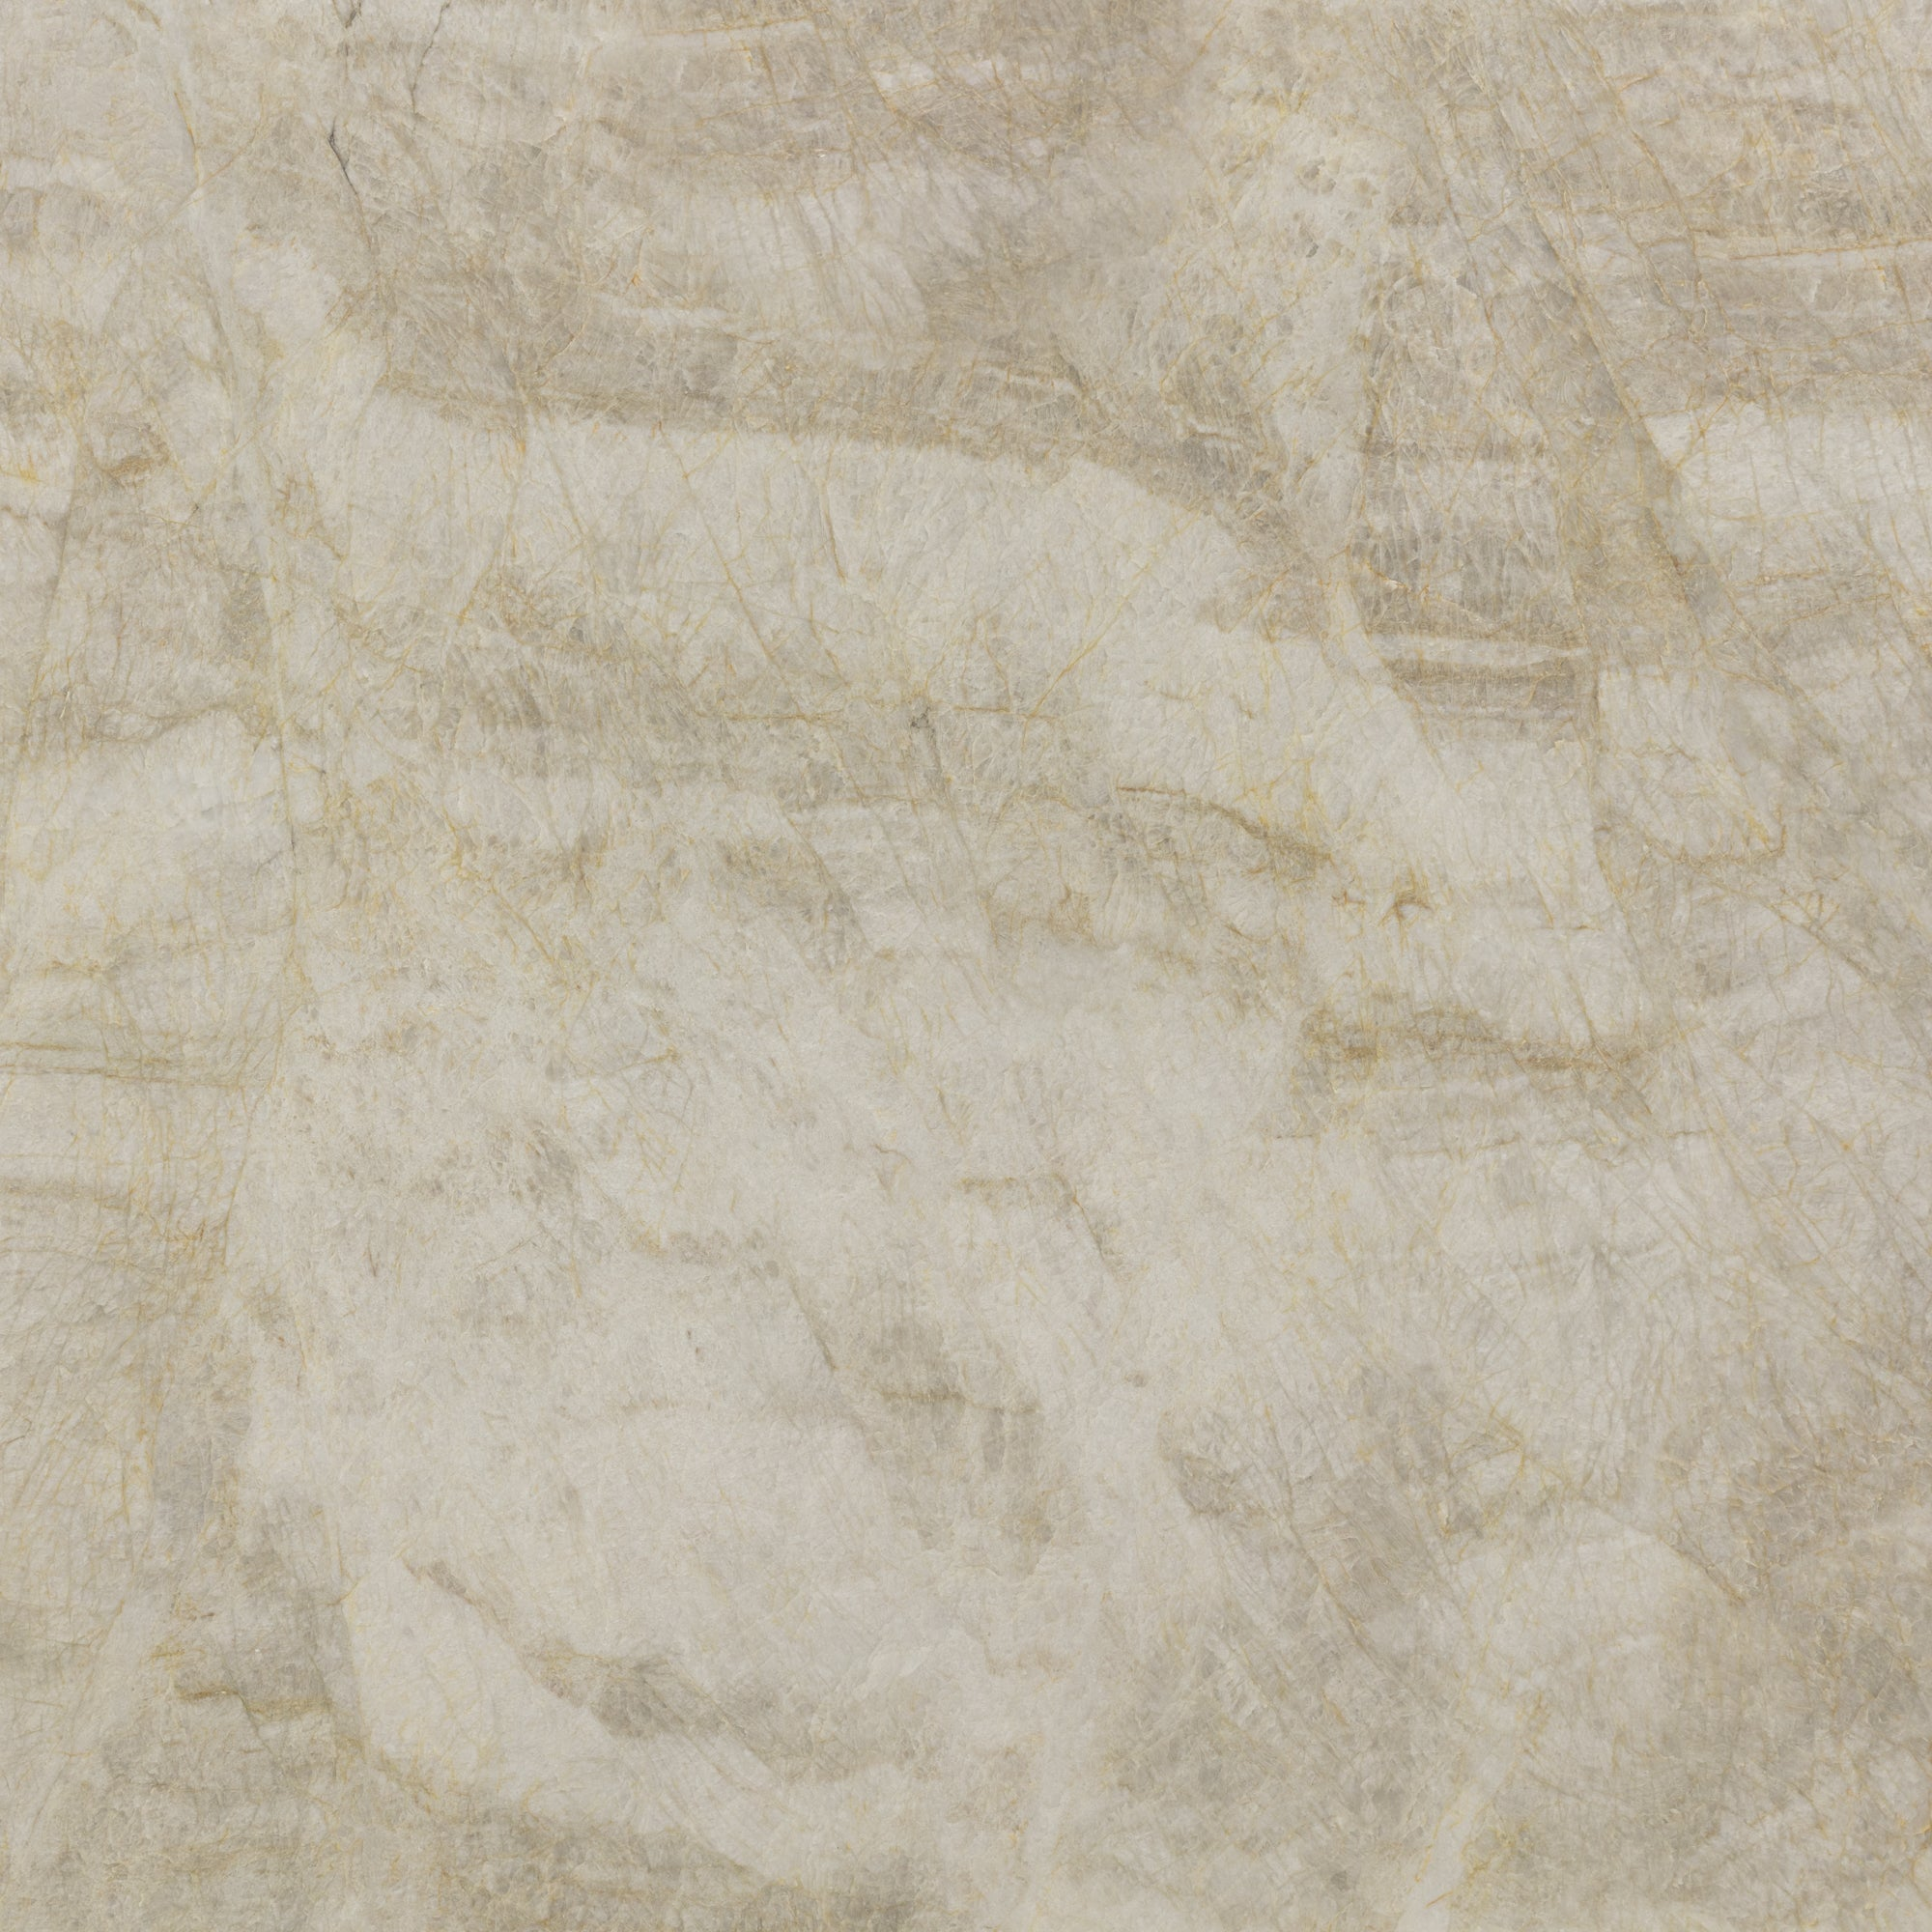 3cm Naica Quartzite Swatch Card  Polished Samples Slab product photo